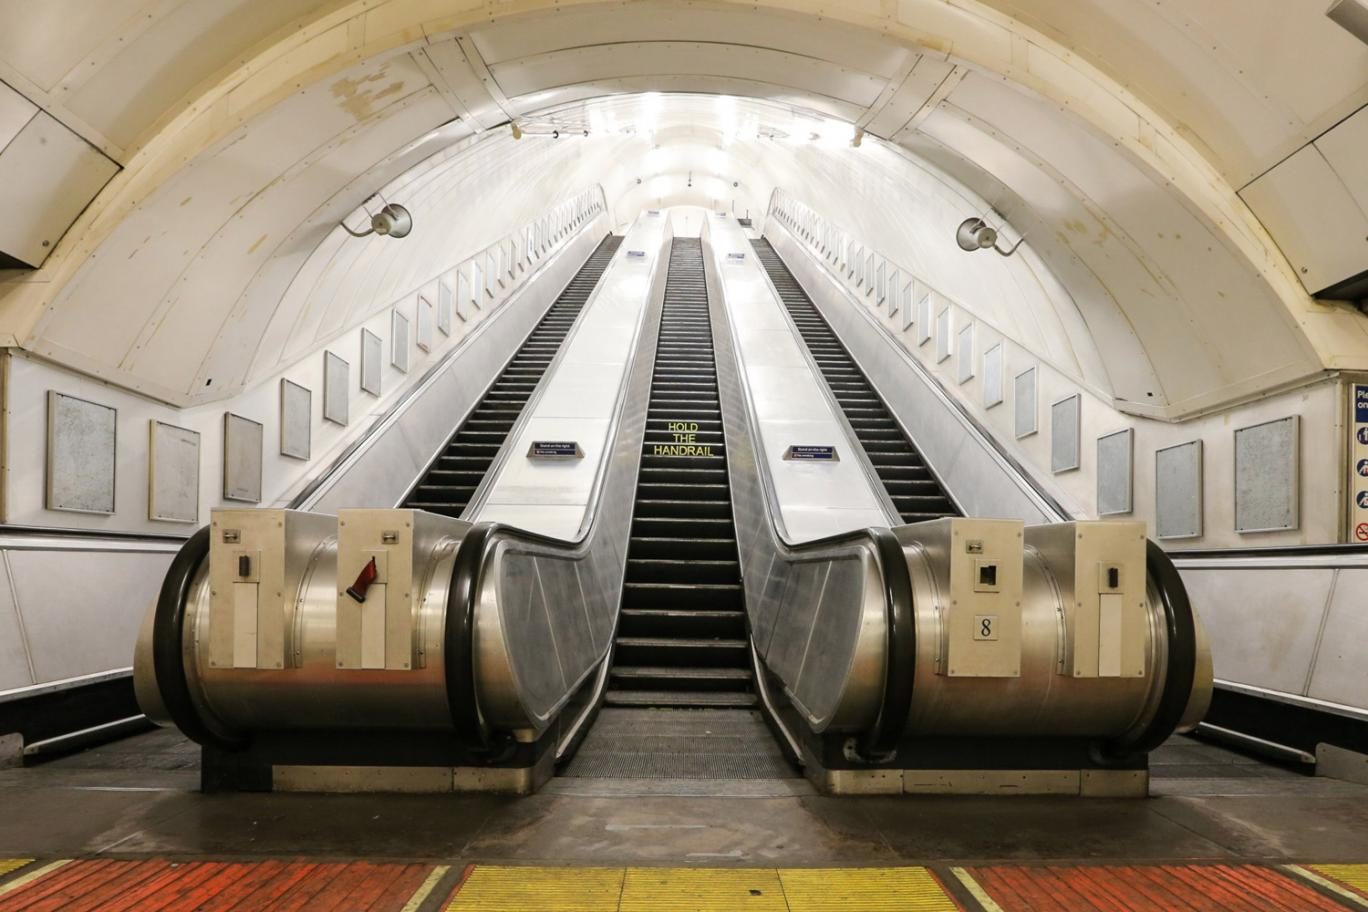 Disused Charing Cross Tube station which will be one of the 10 locations for Art Night. Image via the Guardian